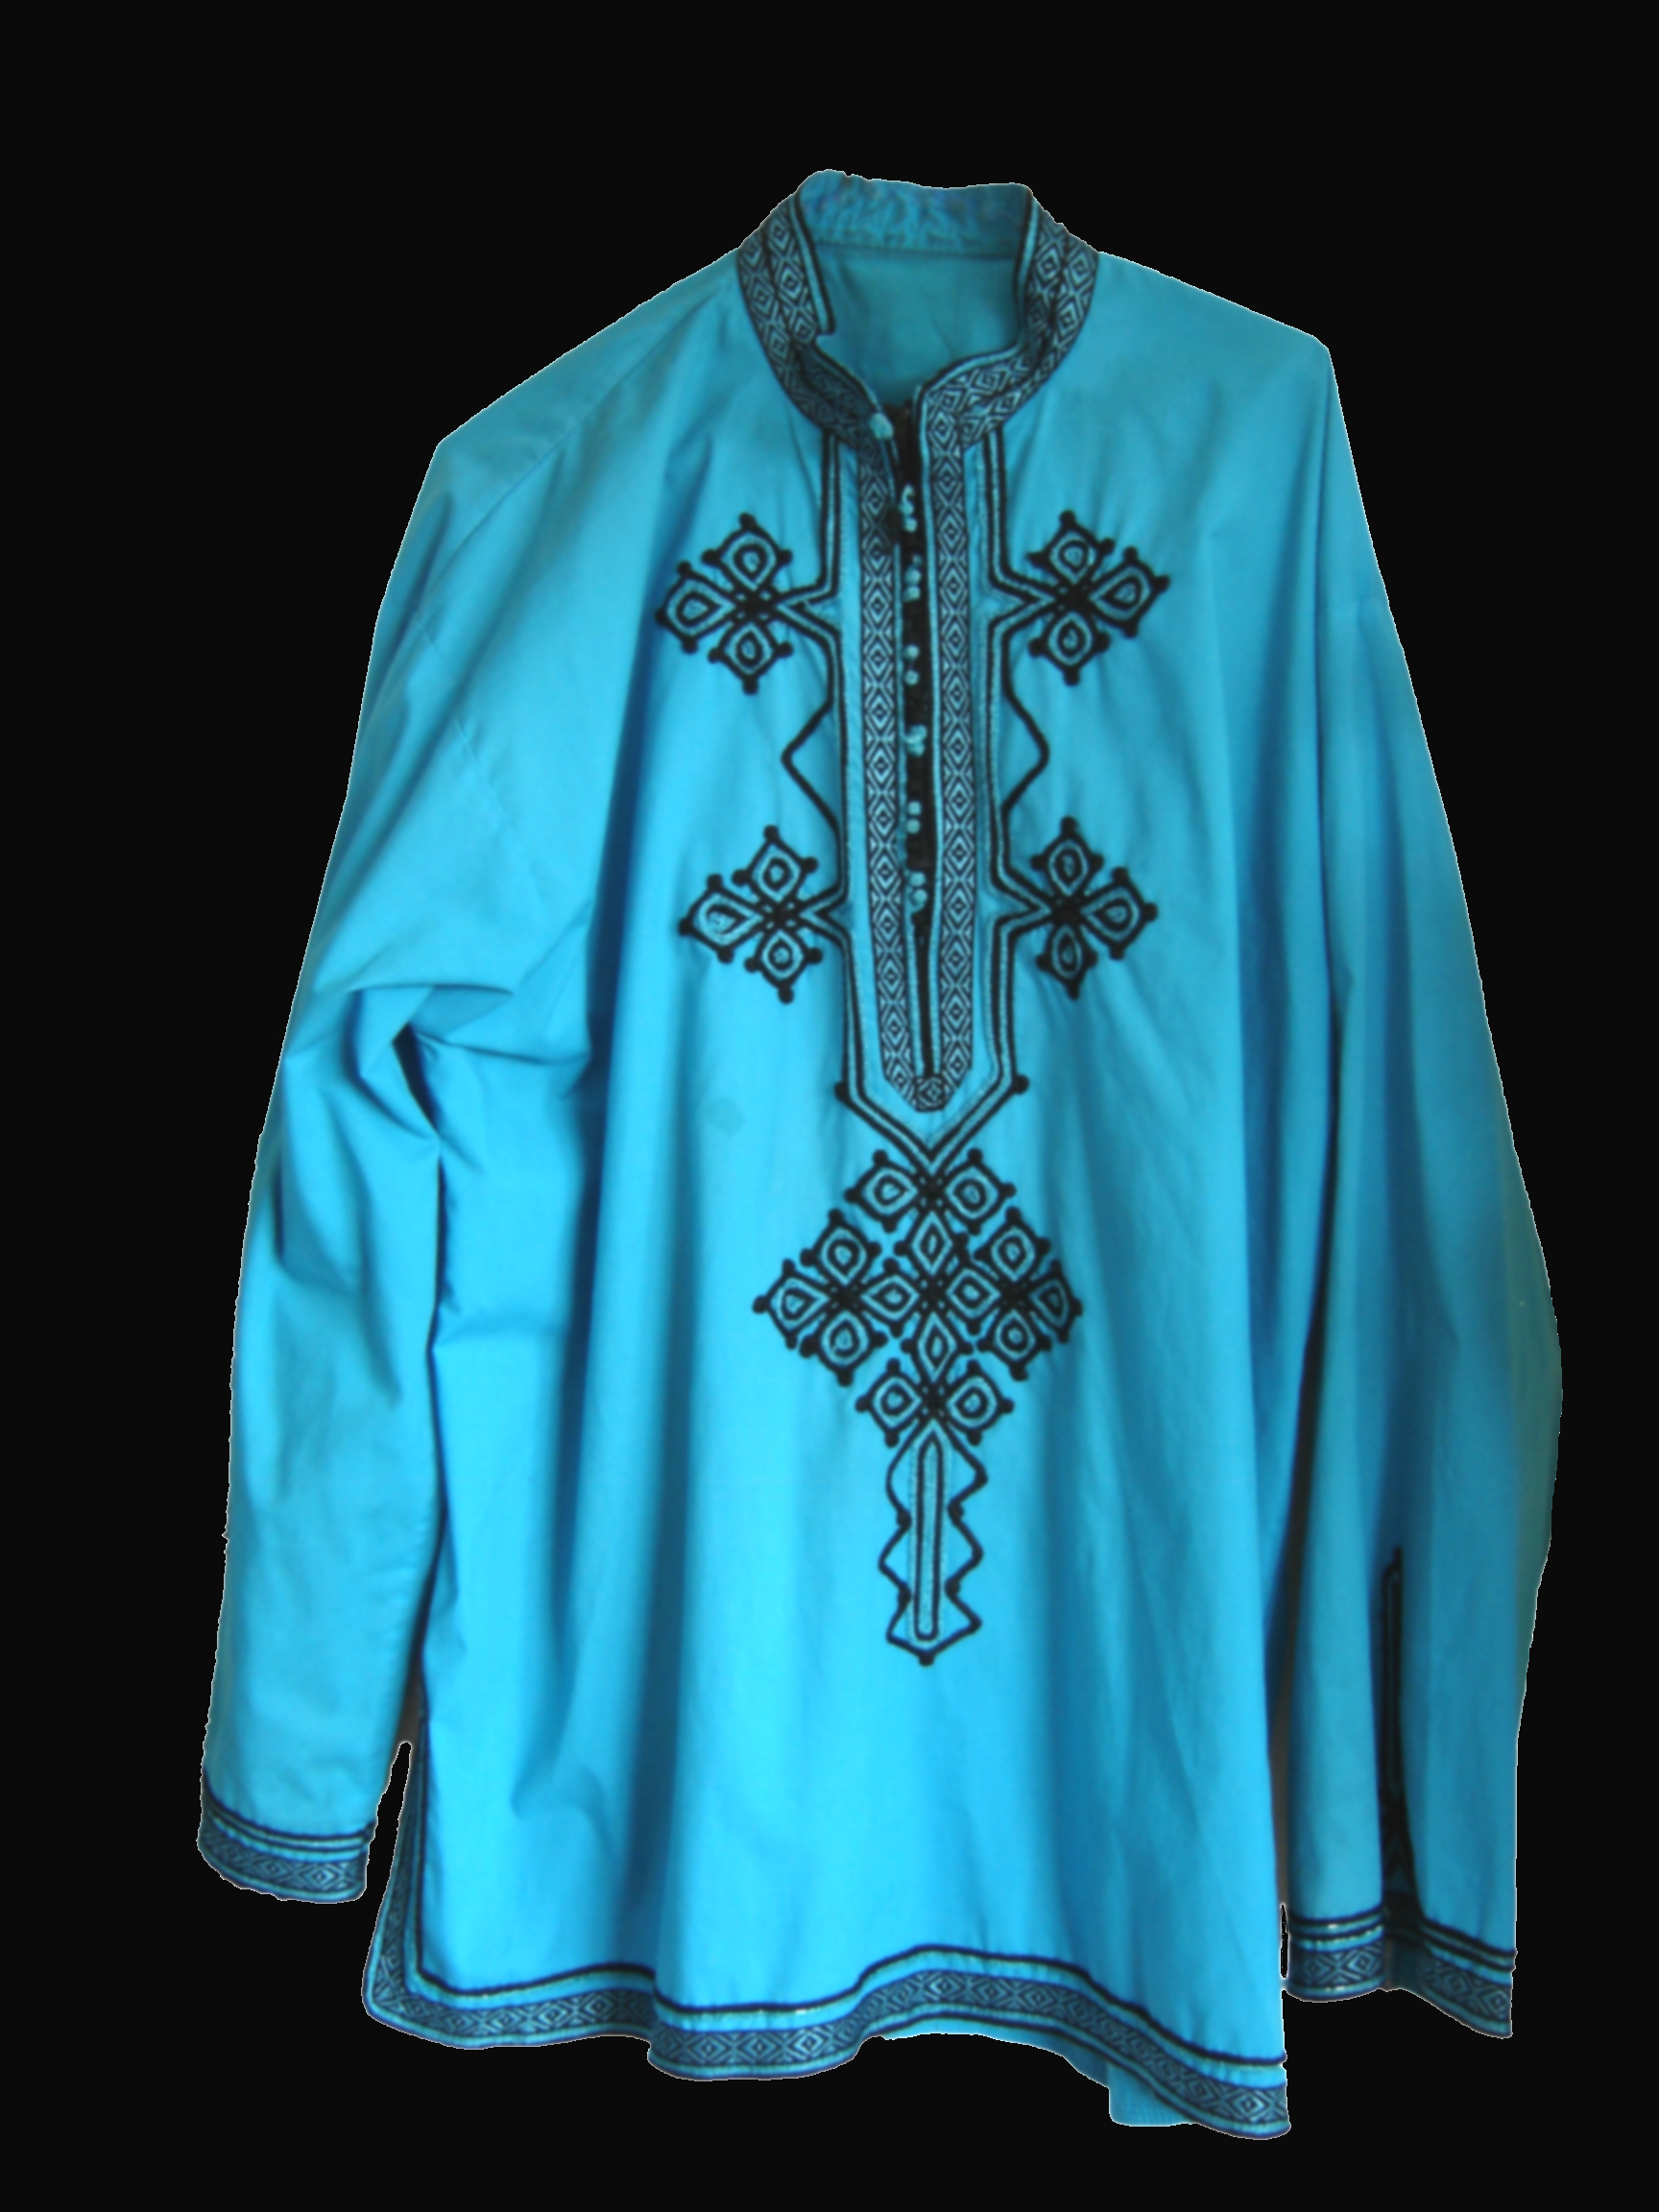 Turquoise Moroccan shirt, from Fez, 71 Golborne Road, London